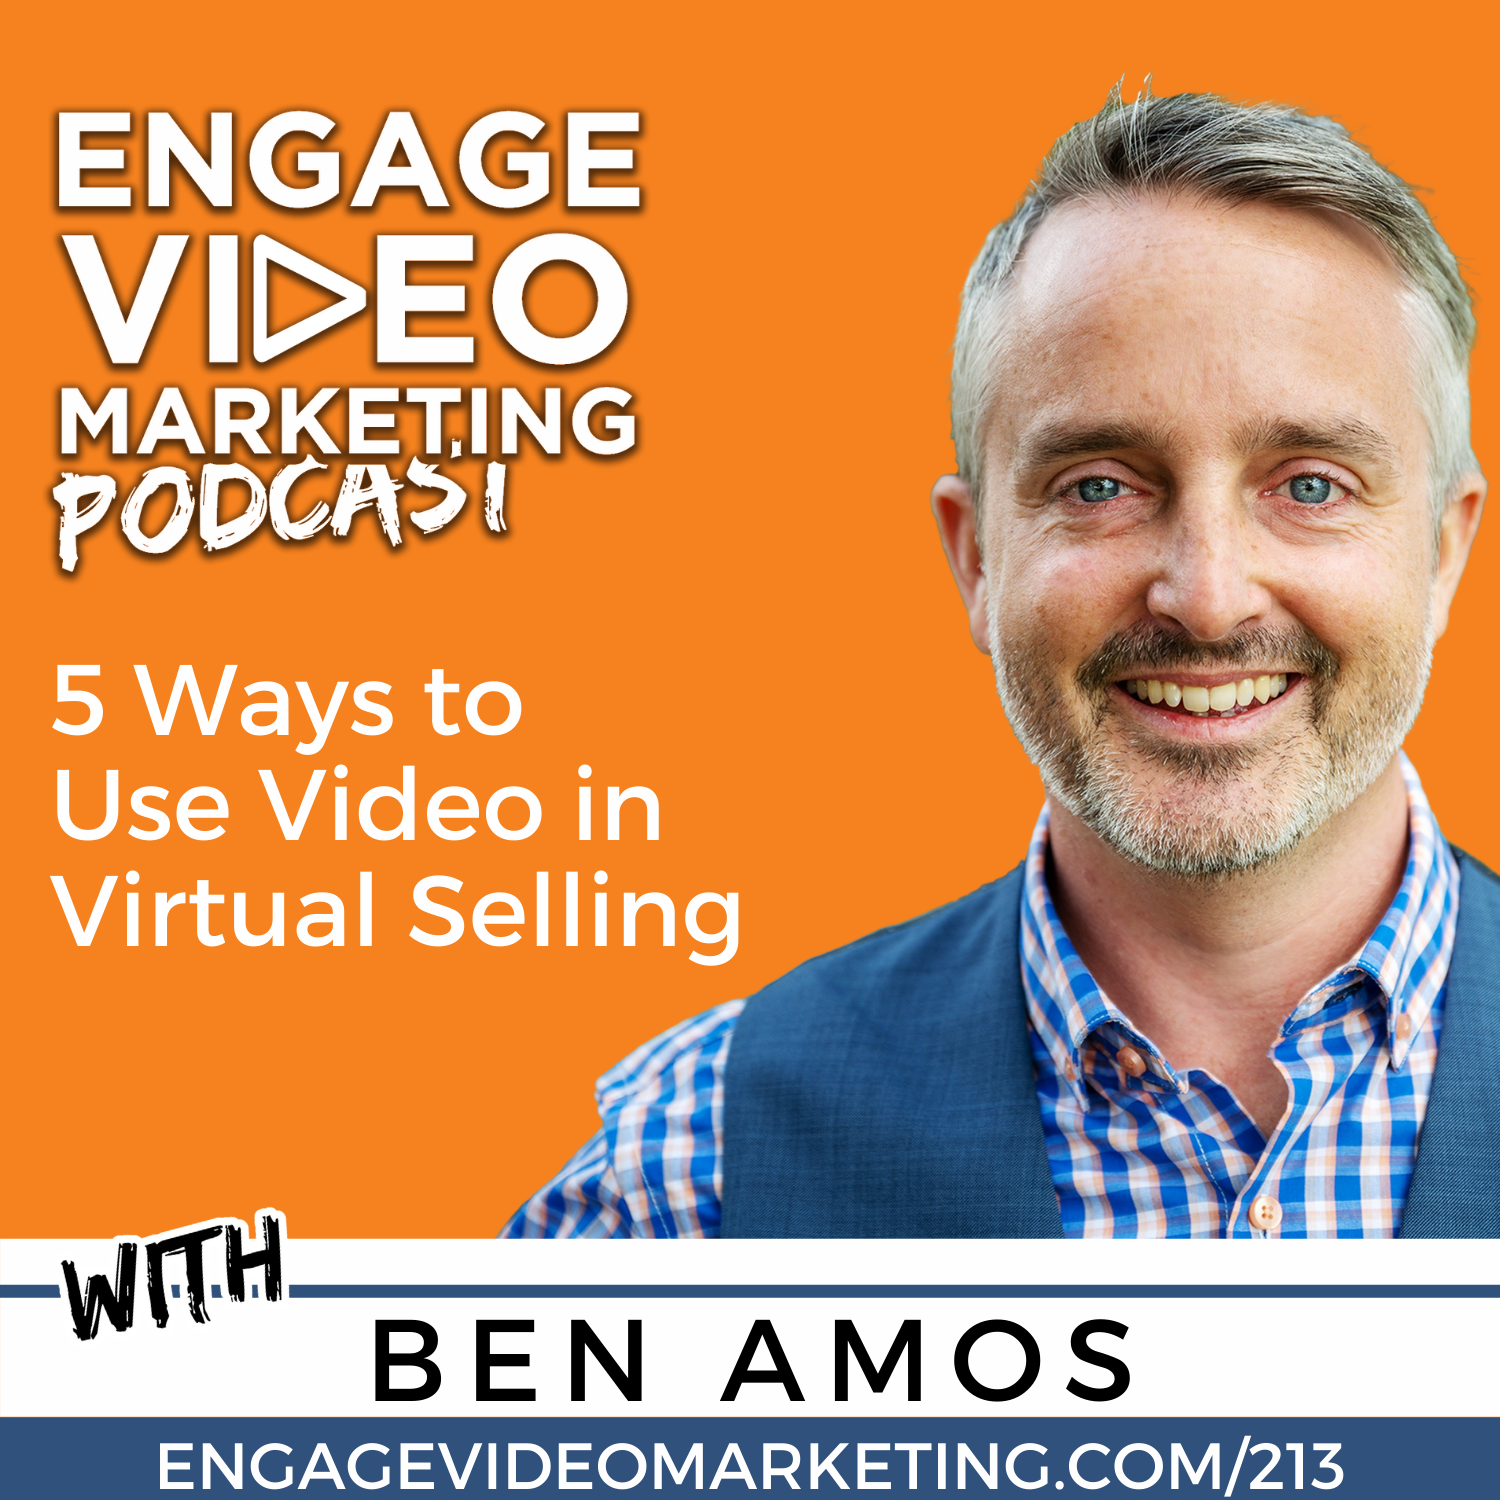 5 Ways to Use Video in Virtual Selling with Ben Amos